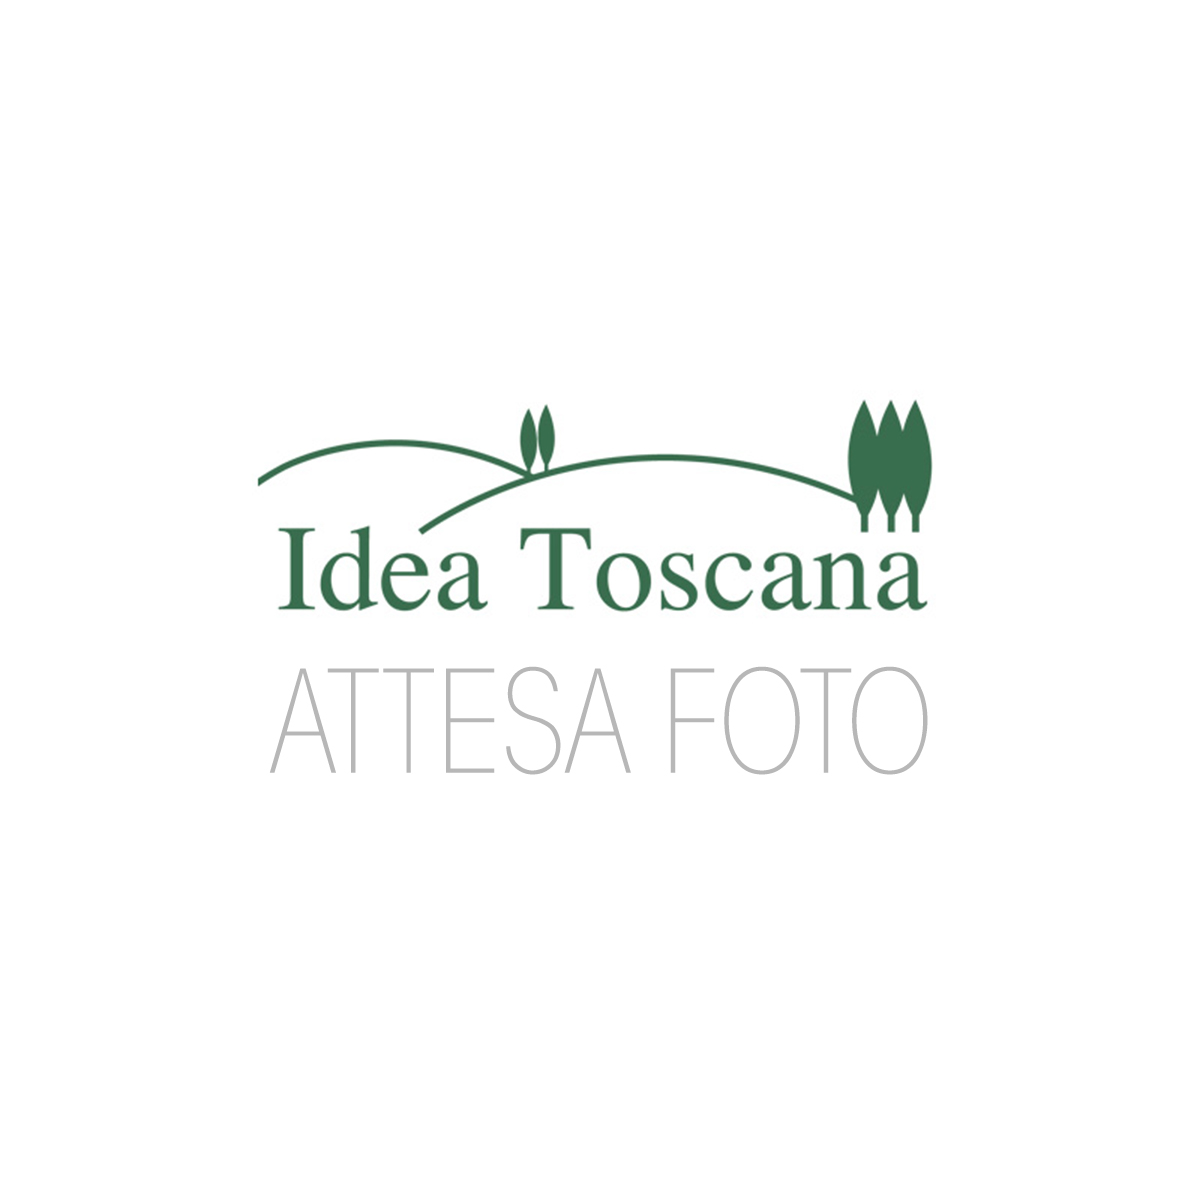 Bagnoschiuma Idratante Prima Spremitura 500ml, bagnoschiuma idratante Idea Toscana, bagnoschiuma neutro, bagnoschiuma ph acido, bagnoschiuma antibatterico, bagnoschiuma antimicotico, bagnoschiuma antiallergico, bagnoschiuma solido, bagnoschiuma senza para